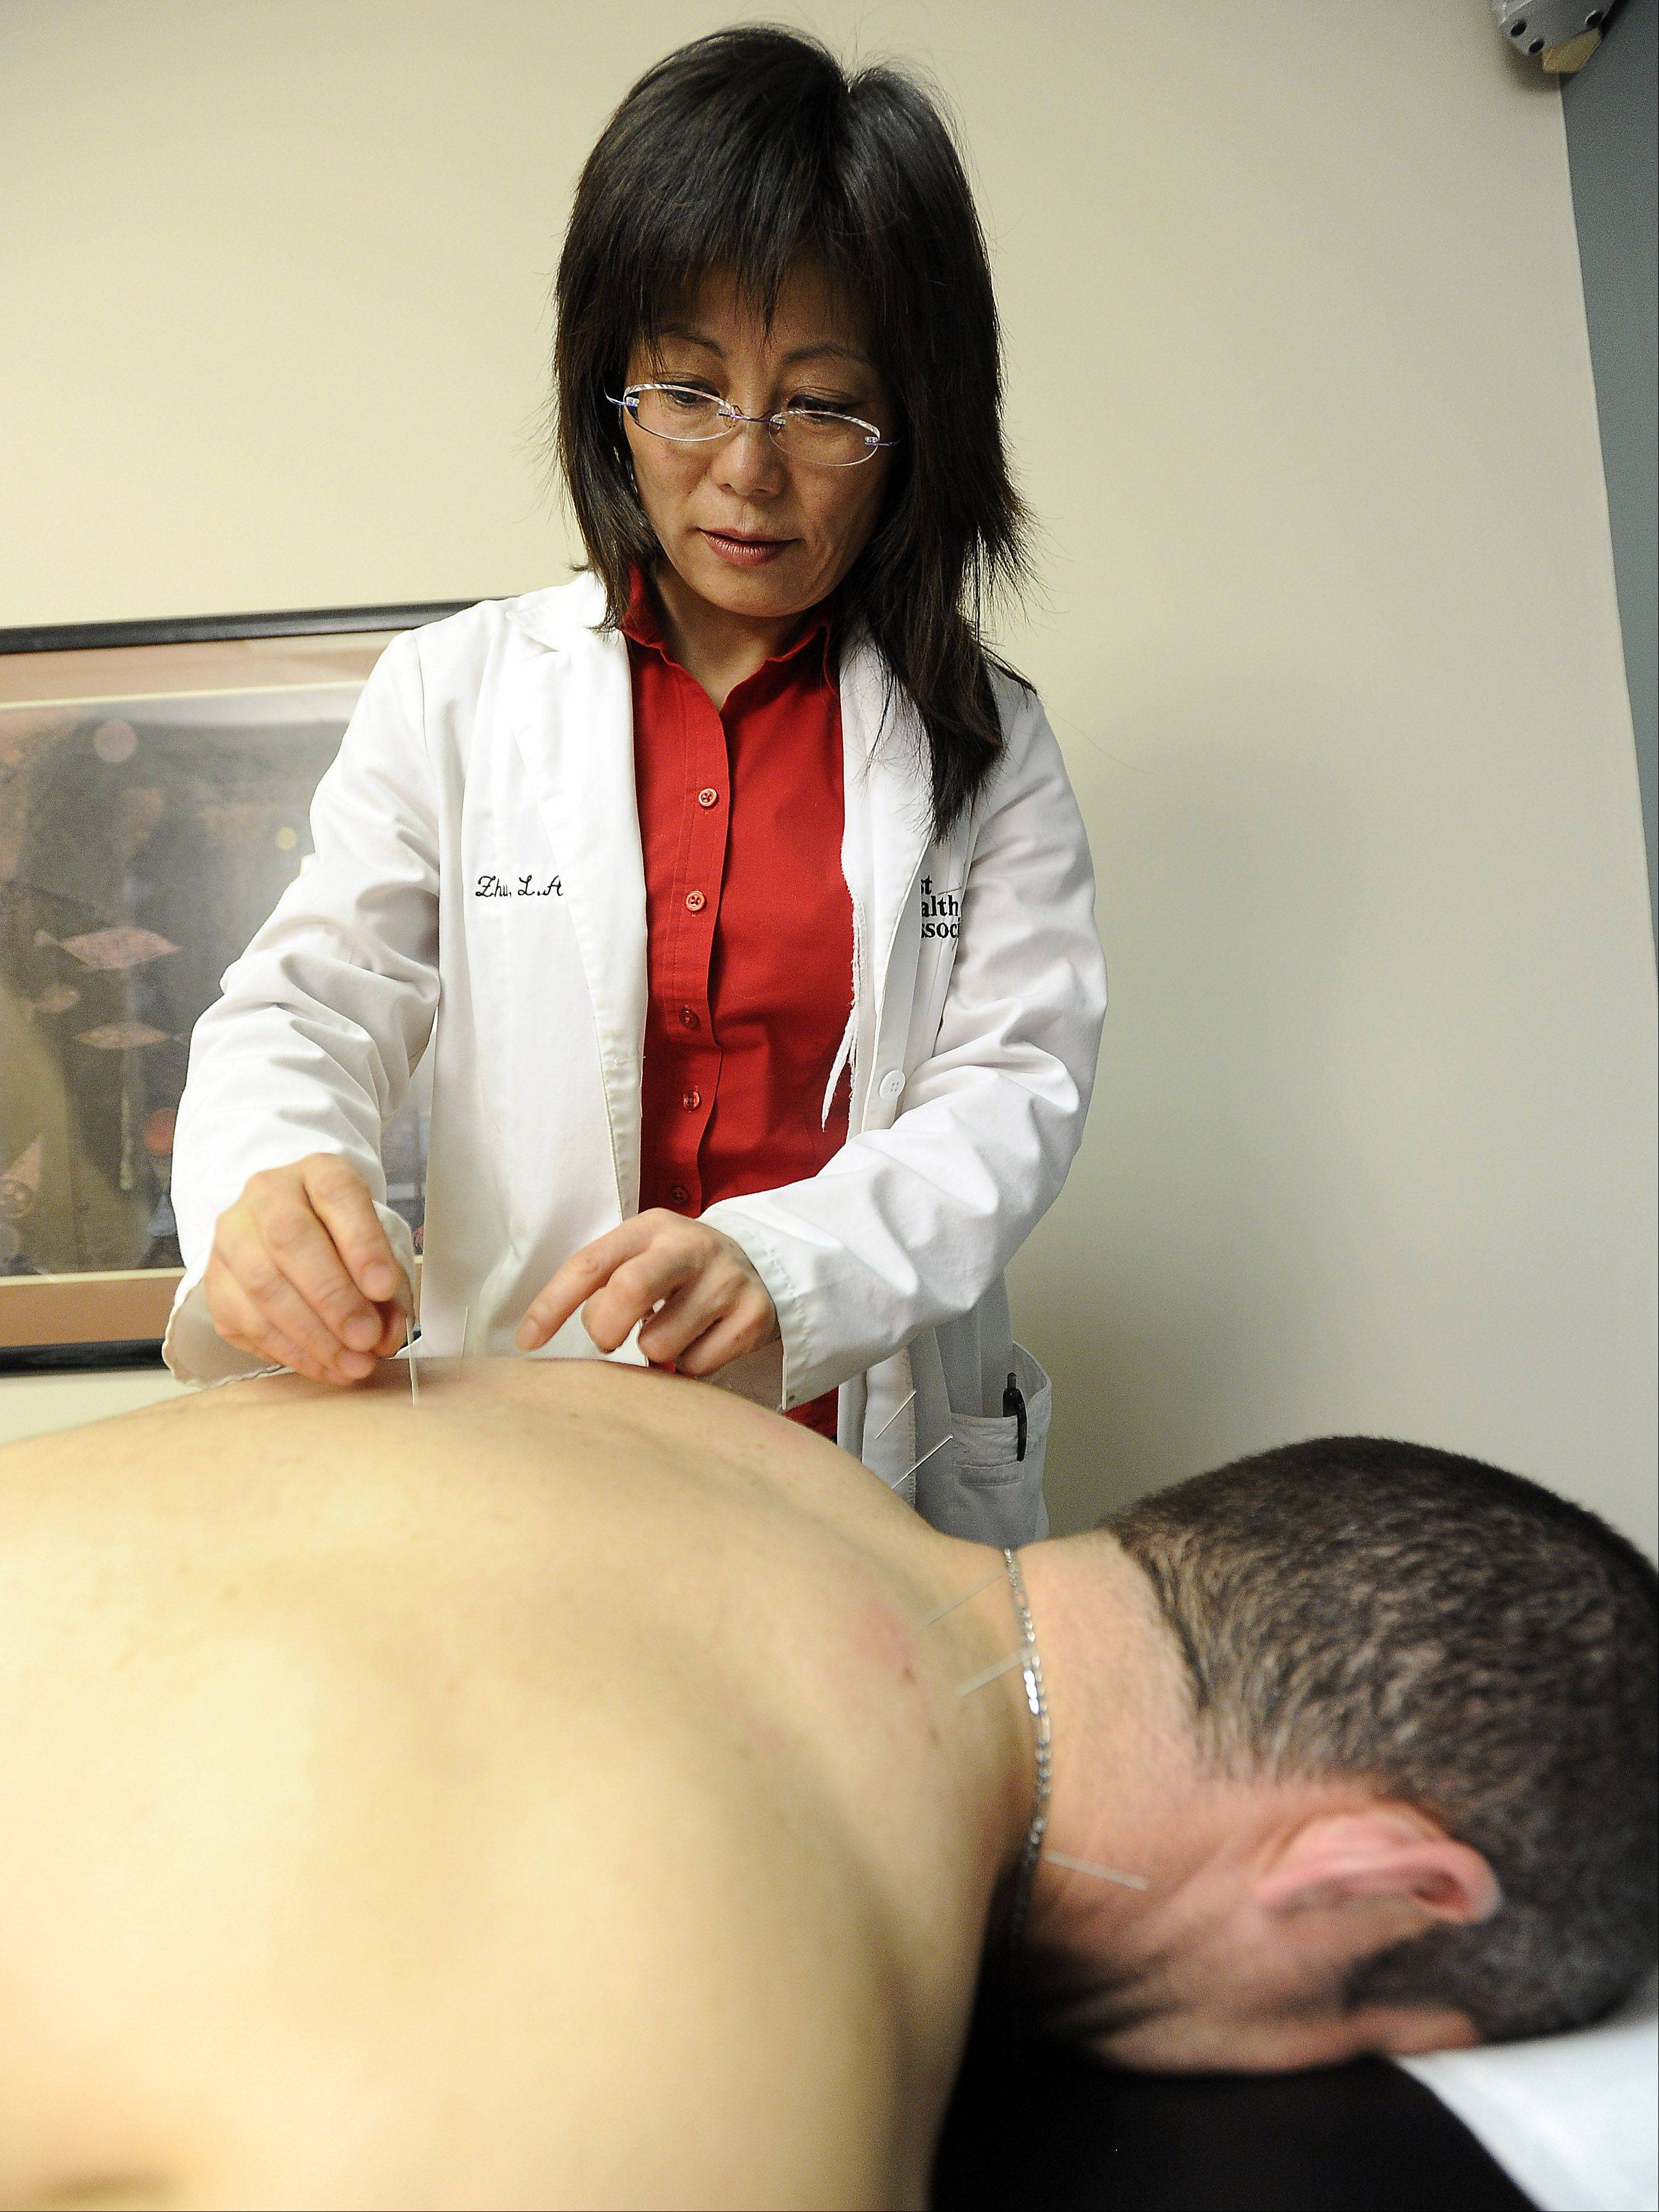 Acupuncture seeks to stimulate healing within body